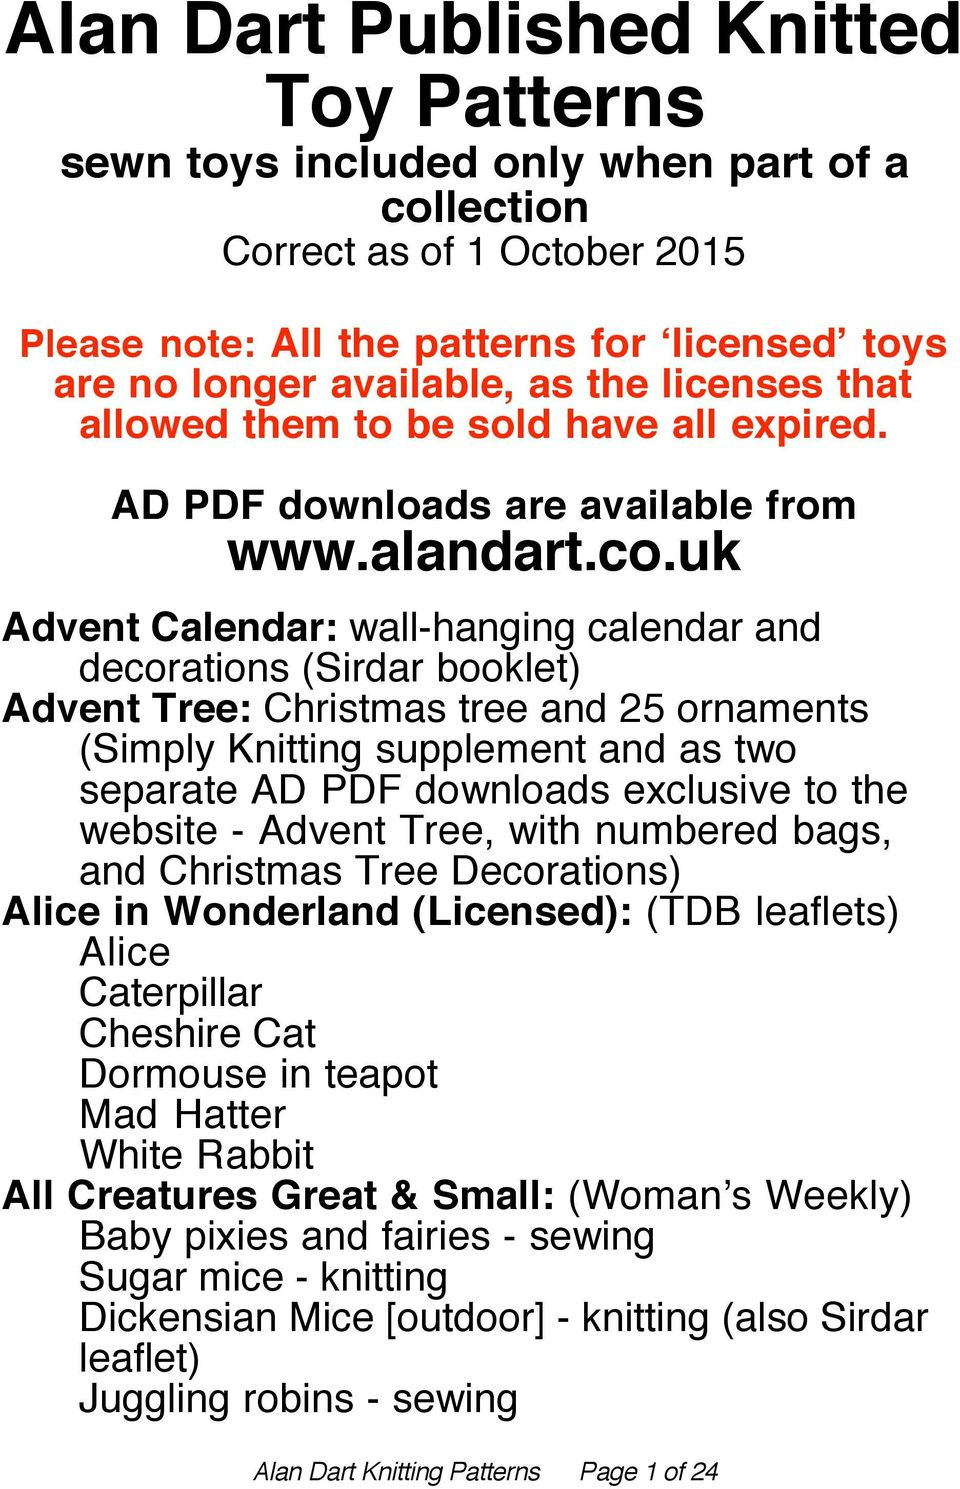 Alan Dart Published Knitted Toy Patterns - PDF